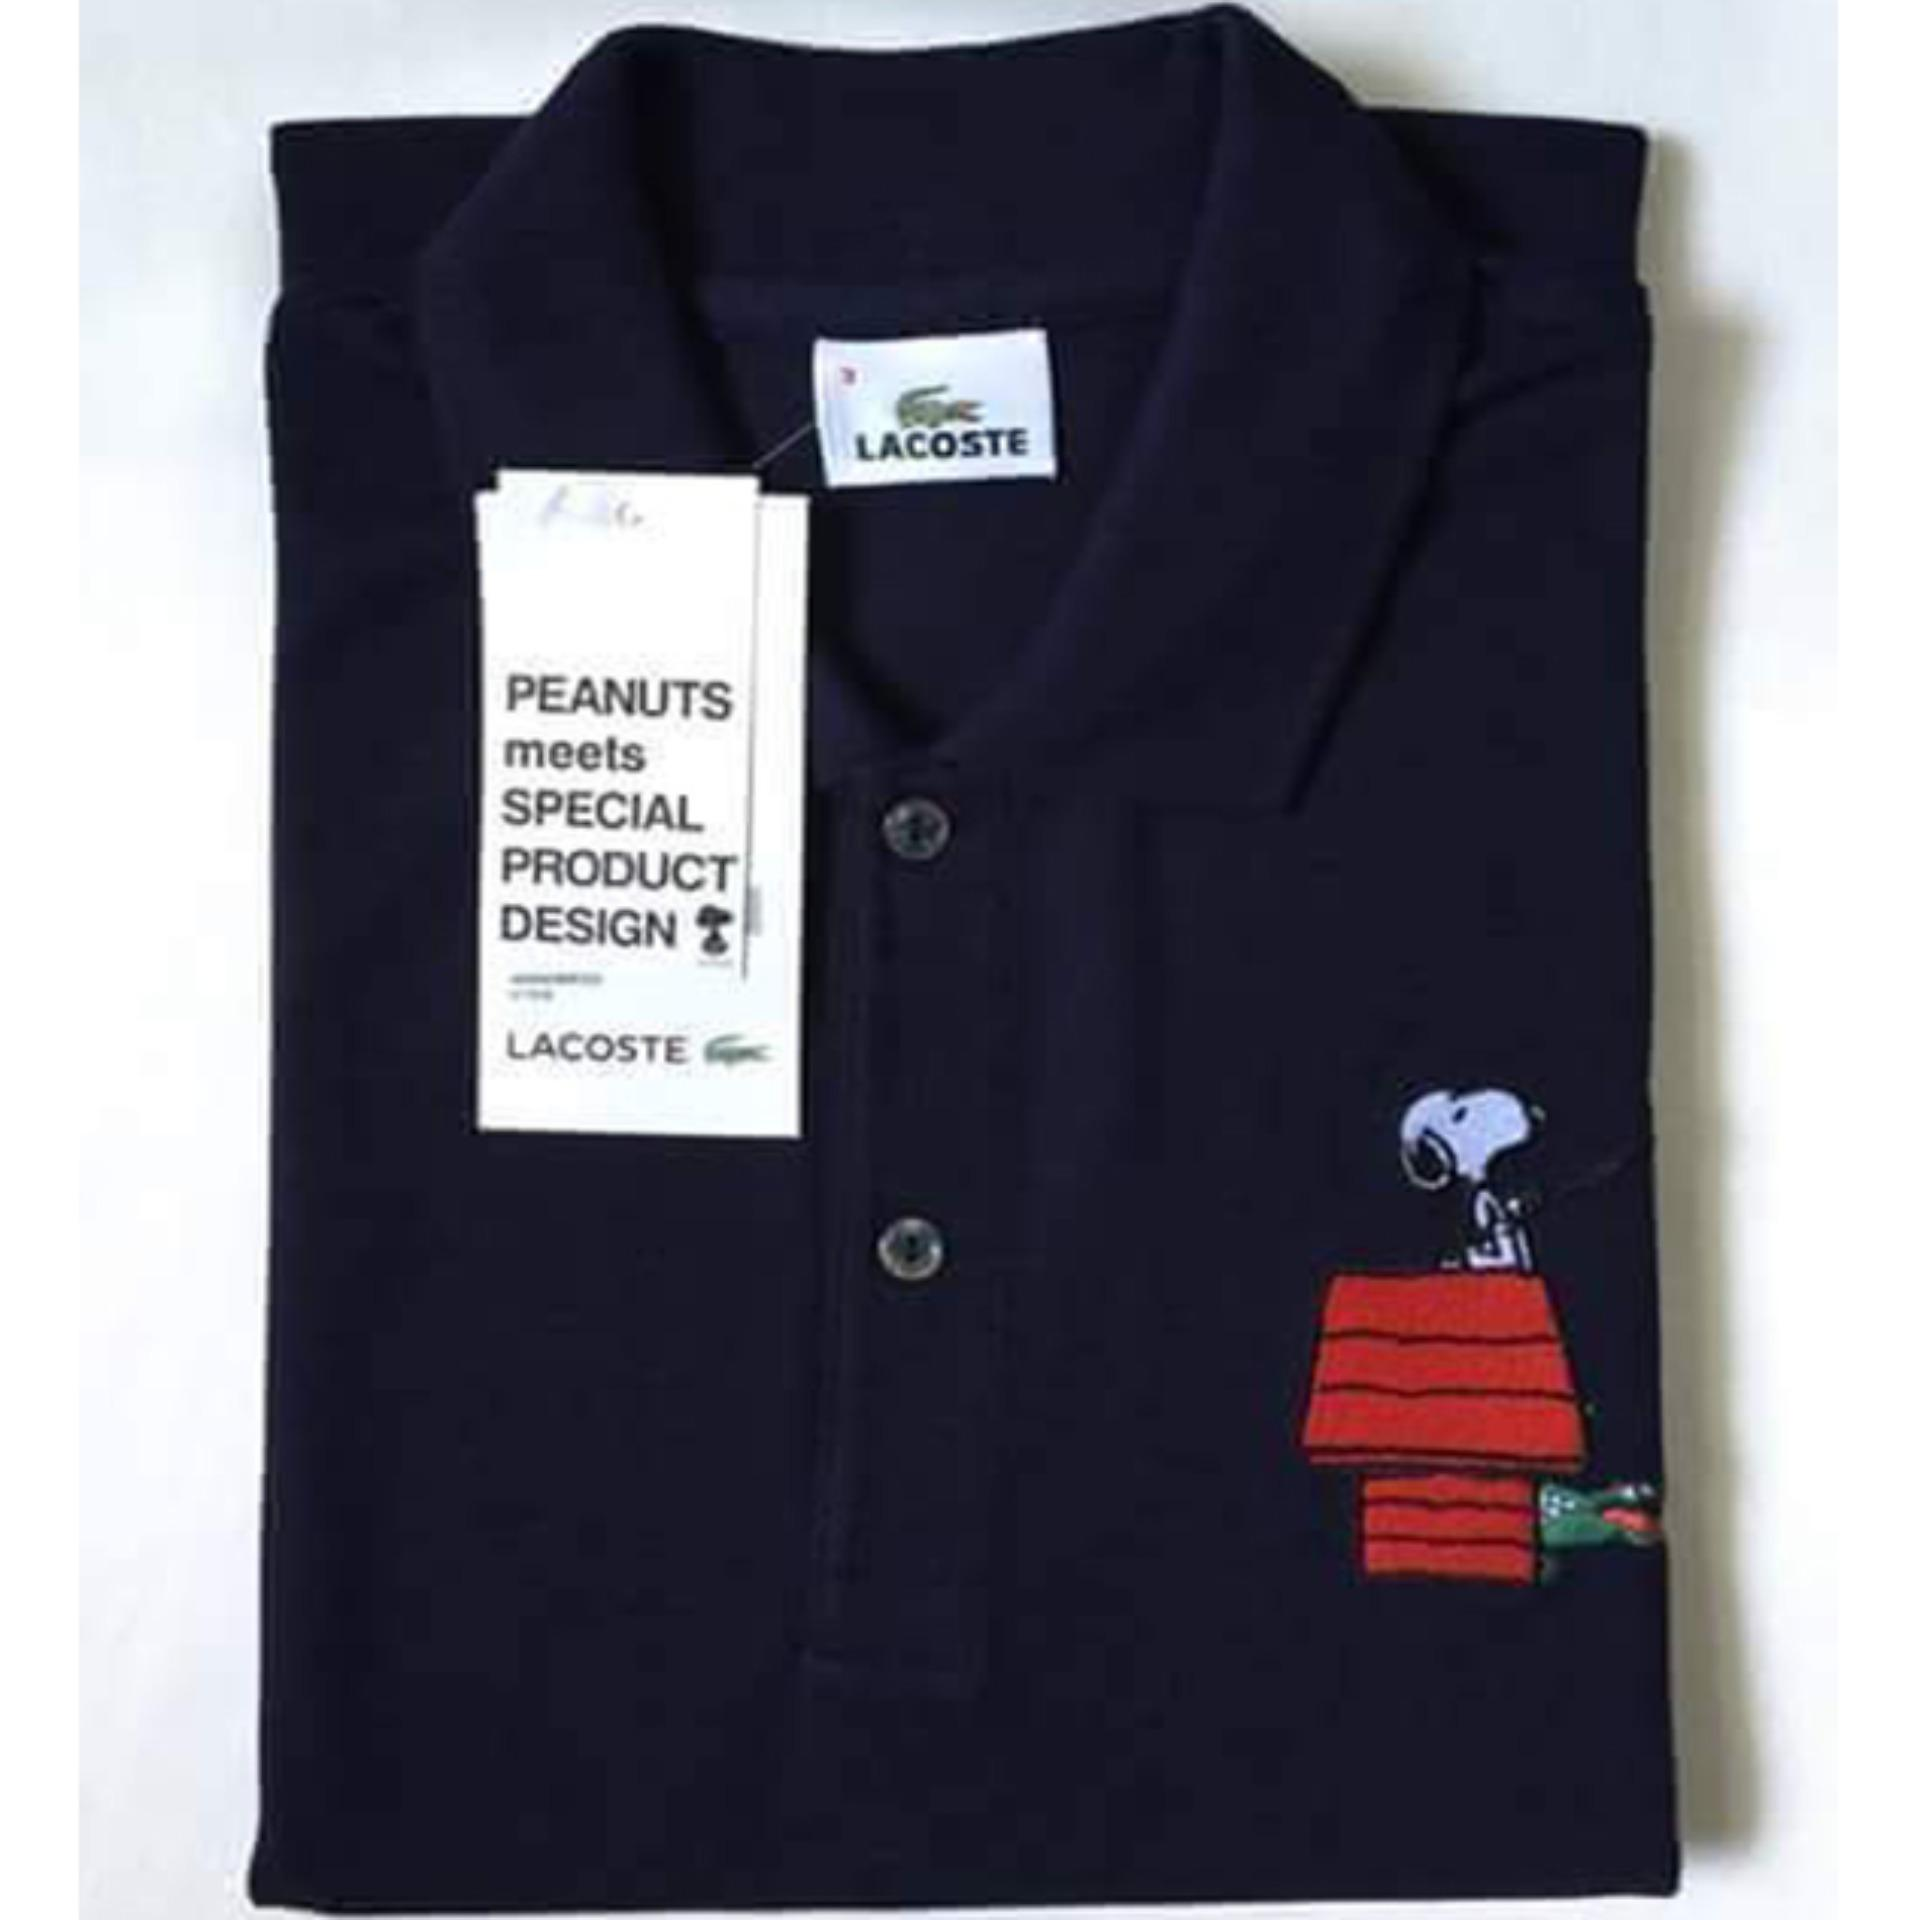 e328b92cf957 Lacoste T Shirt Price In Philippines - BCD Tofu House